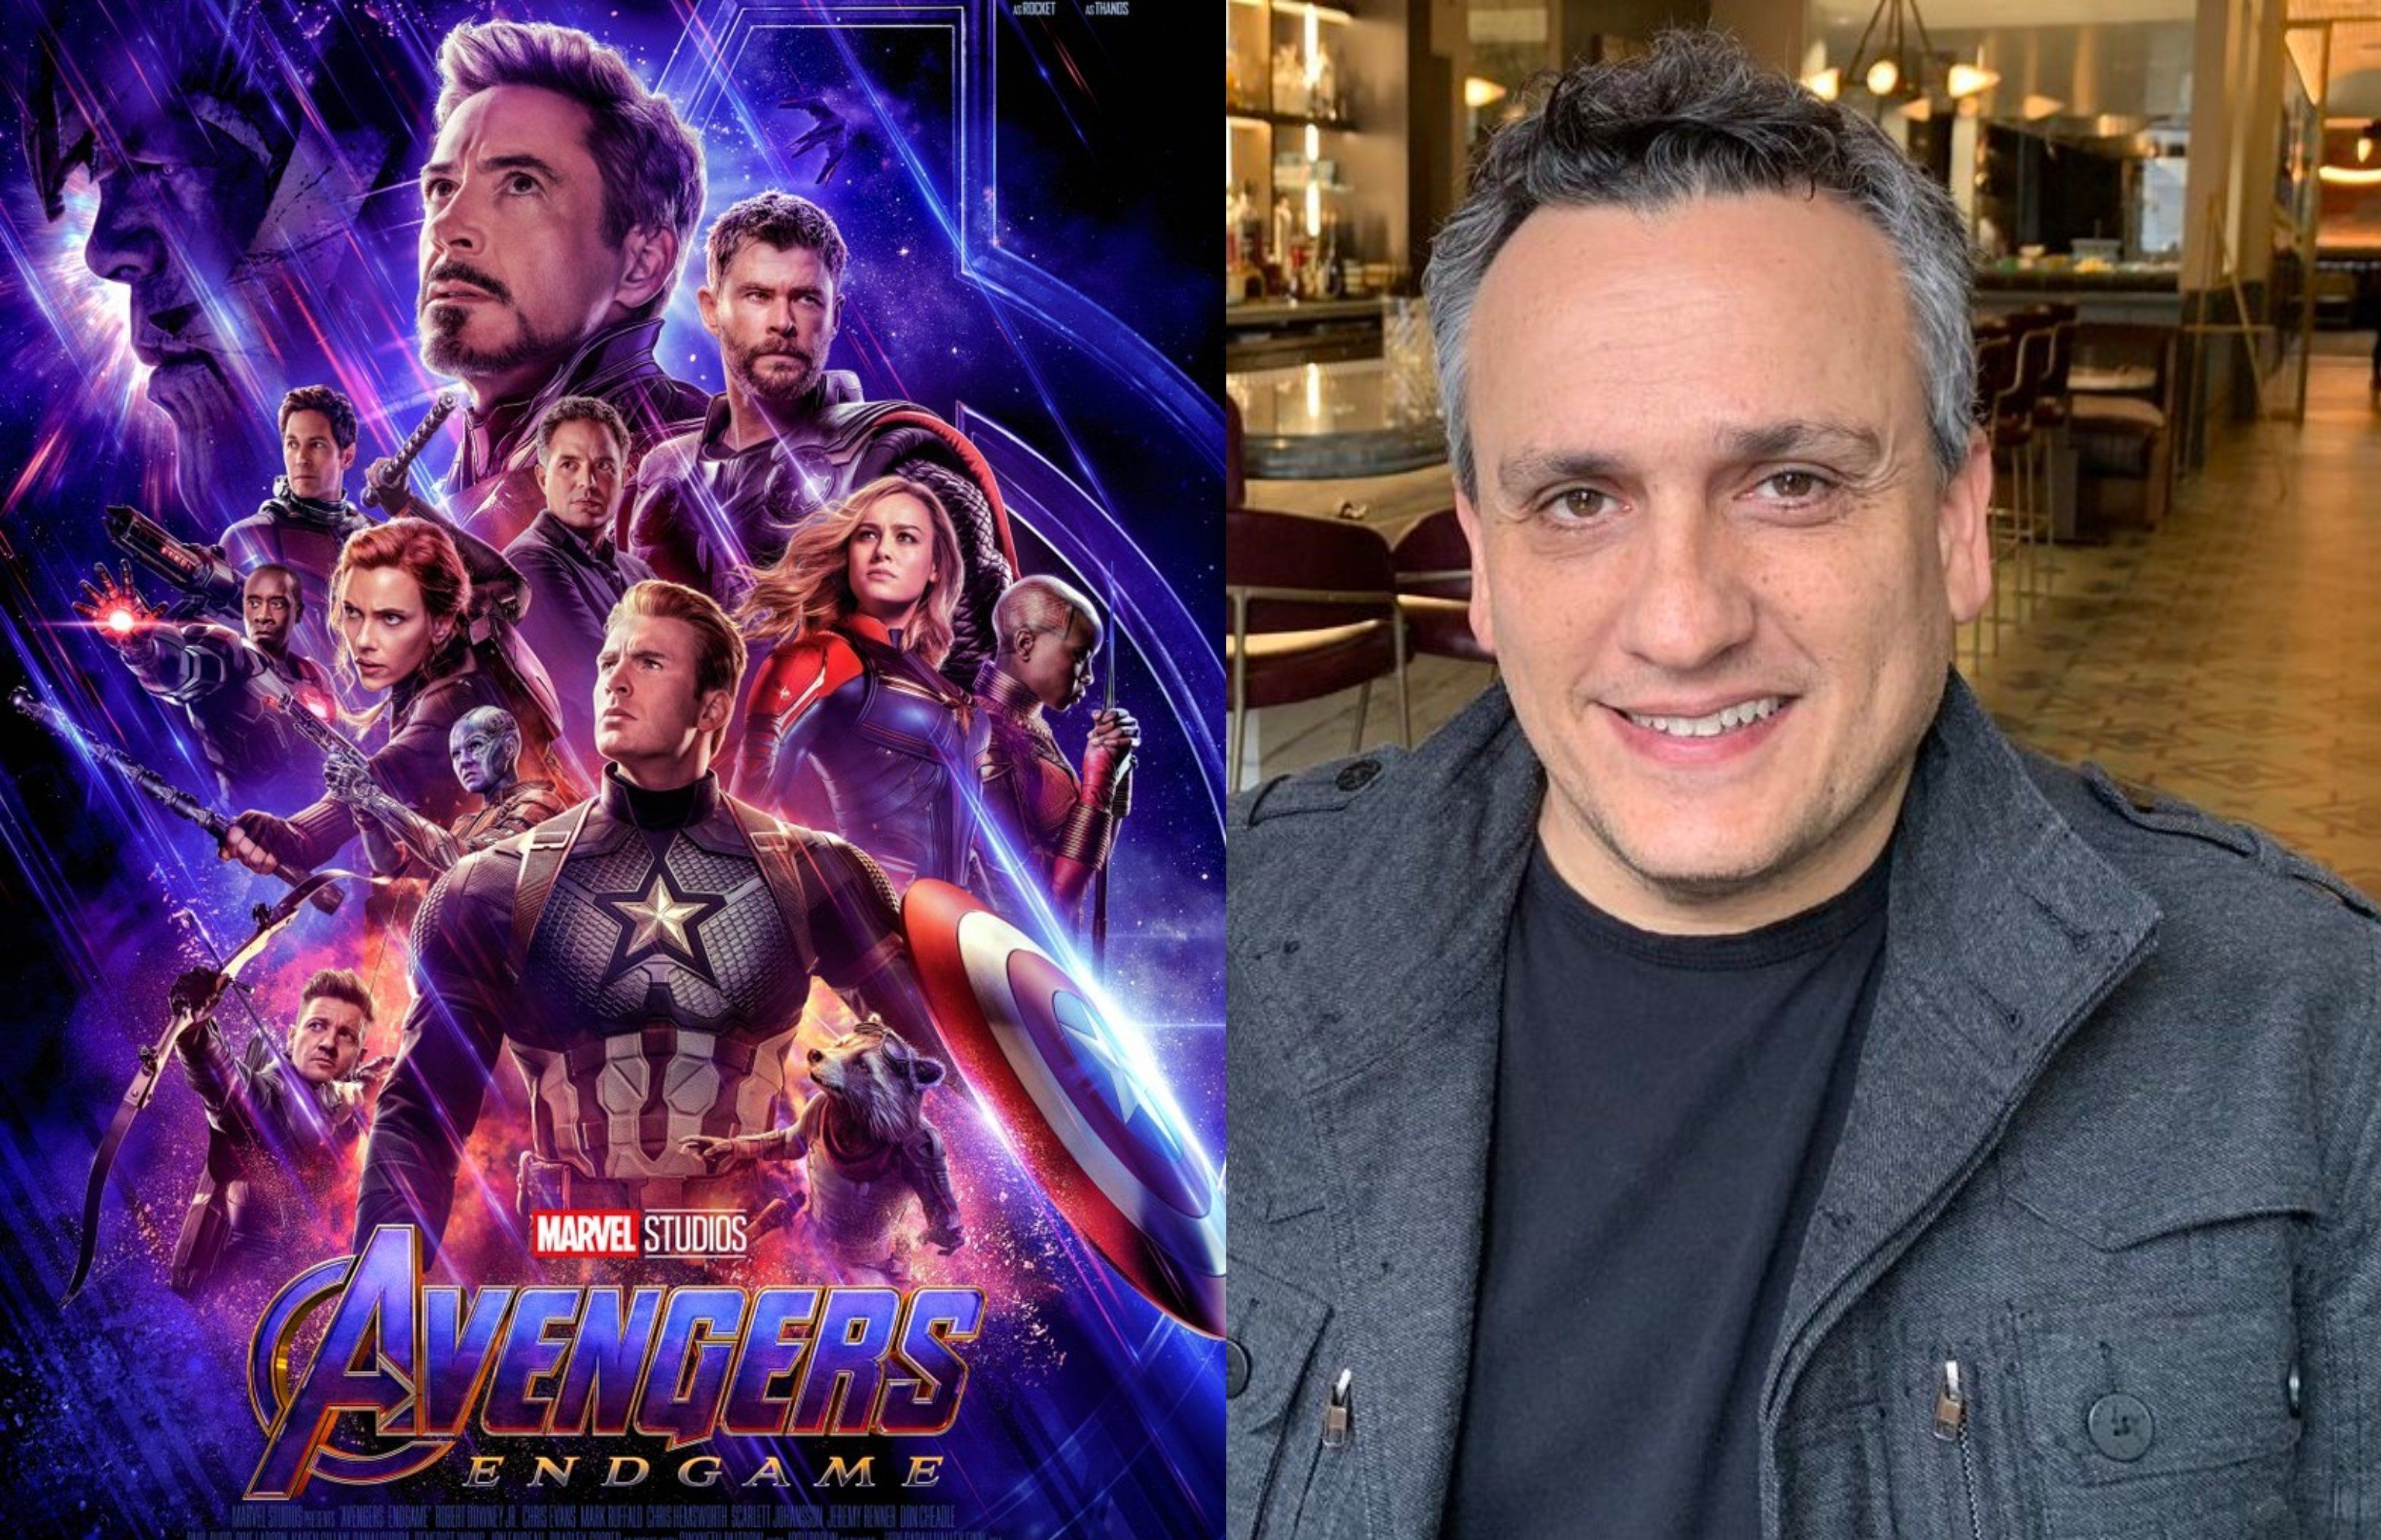 'Avengers' Director Joe Russo On Hollywood's Superhero Fixation, White Nationalism And